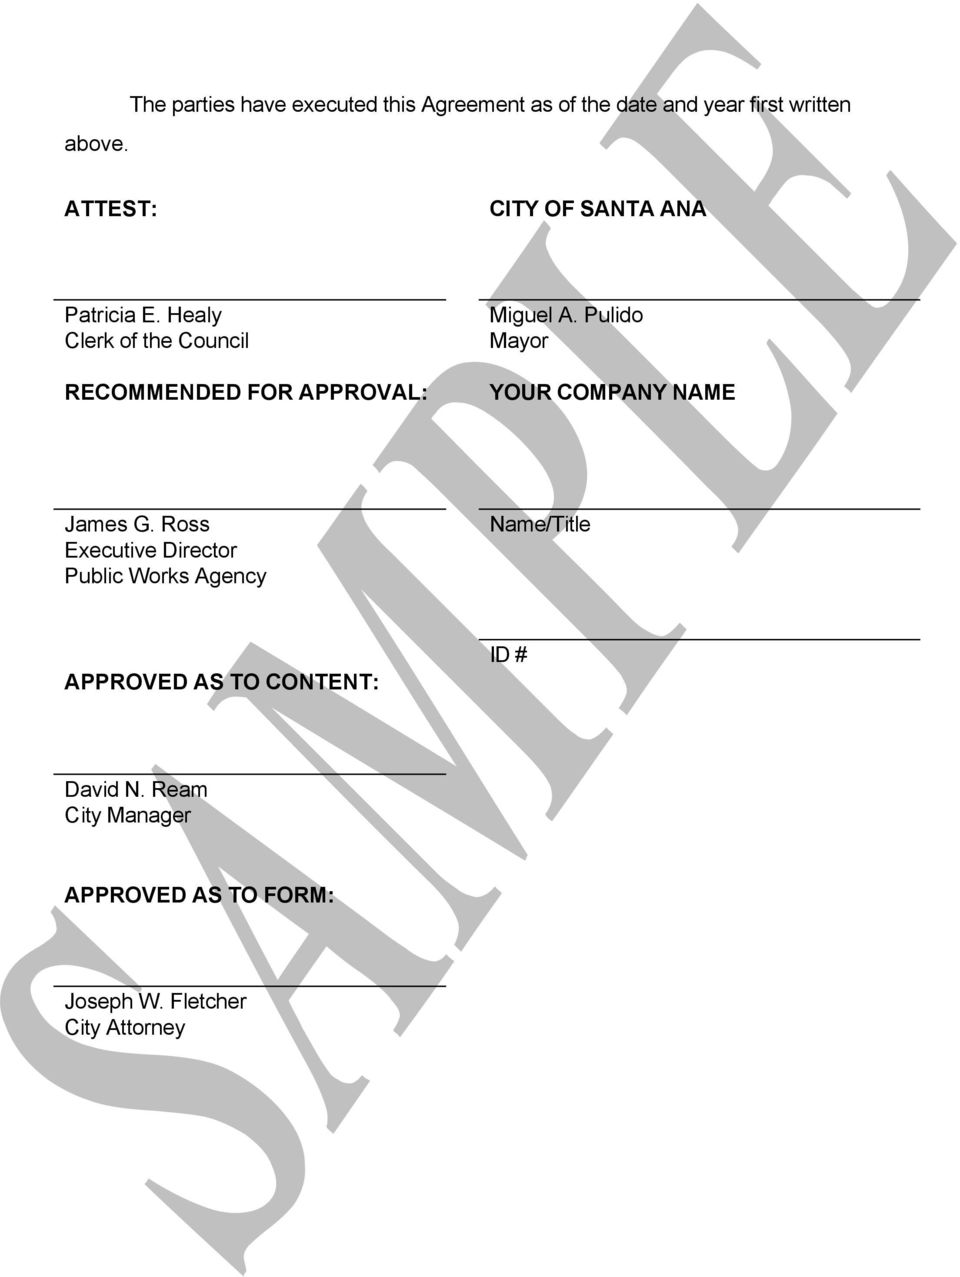 SANTA ANA Patricia E. Healy Clerk of the Council RECOMMENDED FOR APPROVAL: Miguel A.